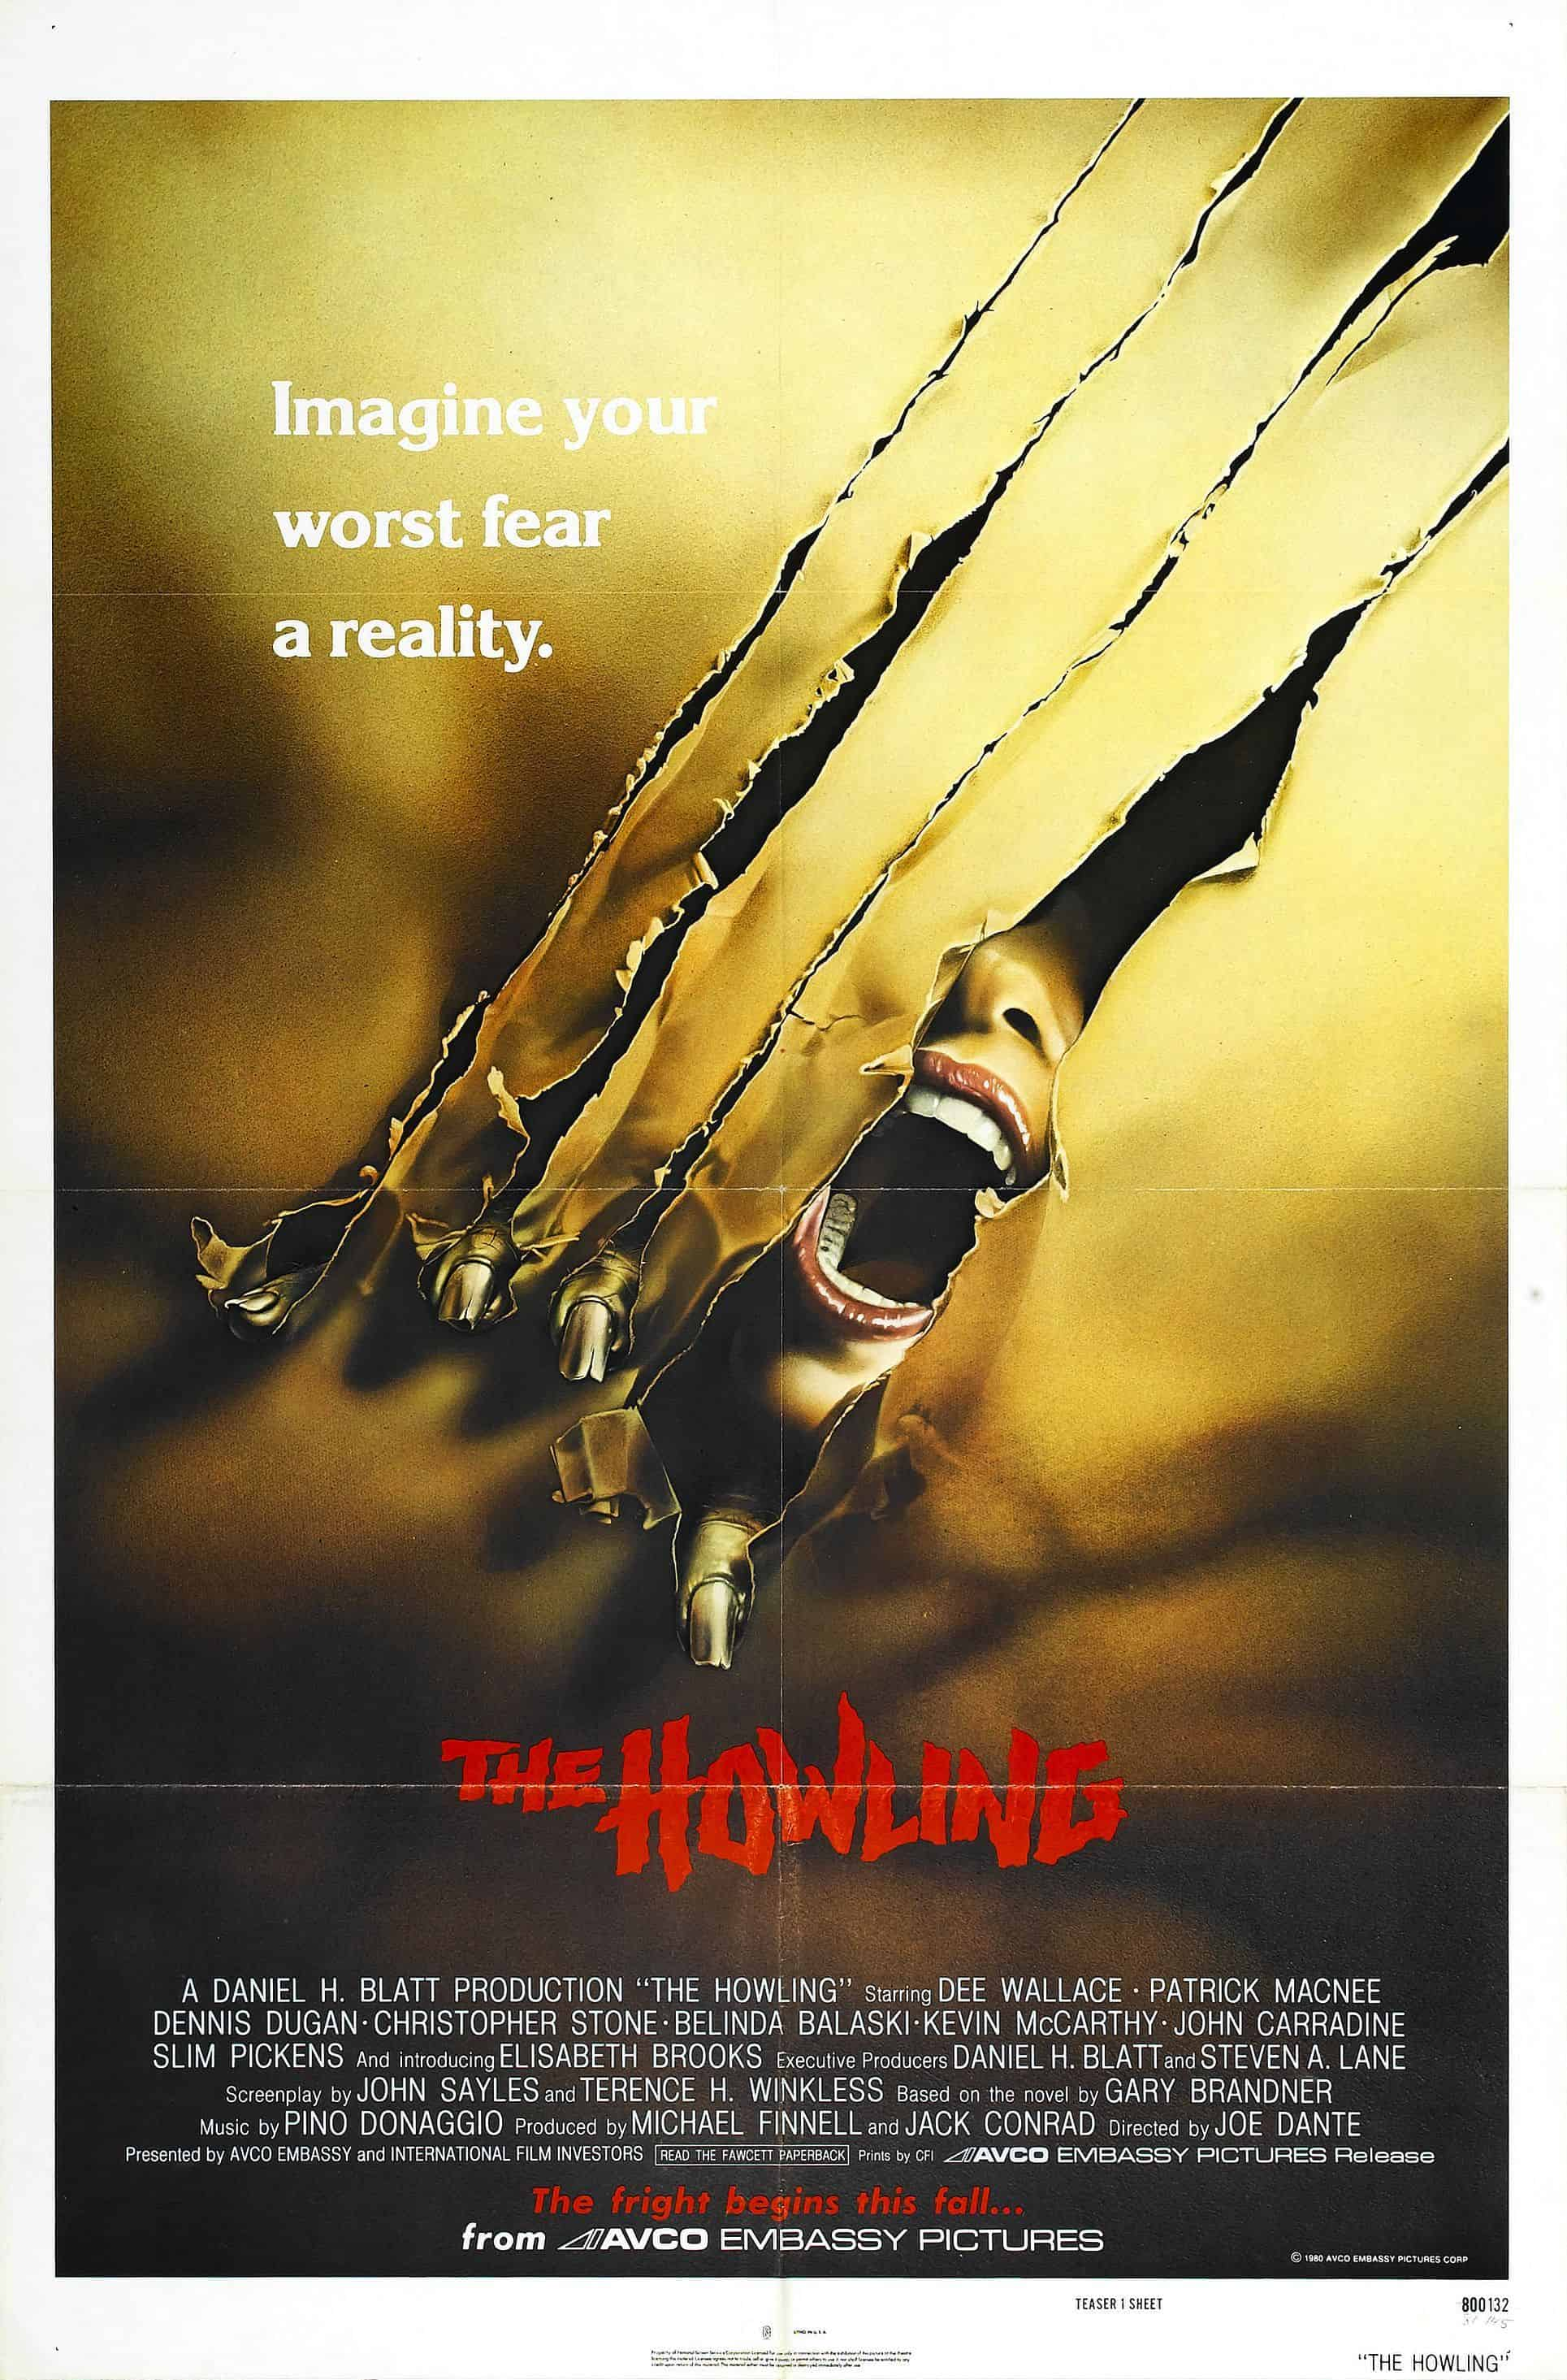 Movie Posters We Love: The Howling